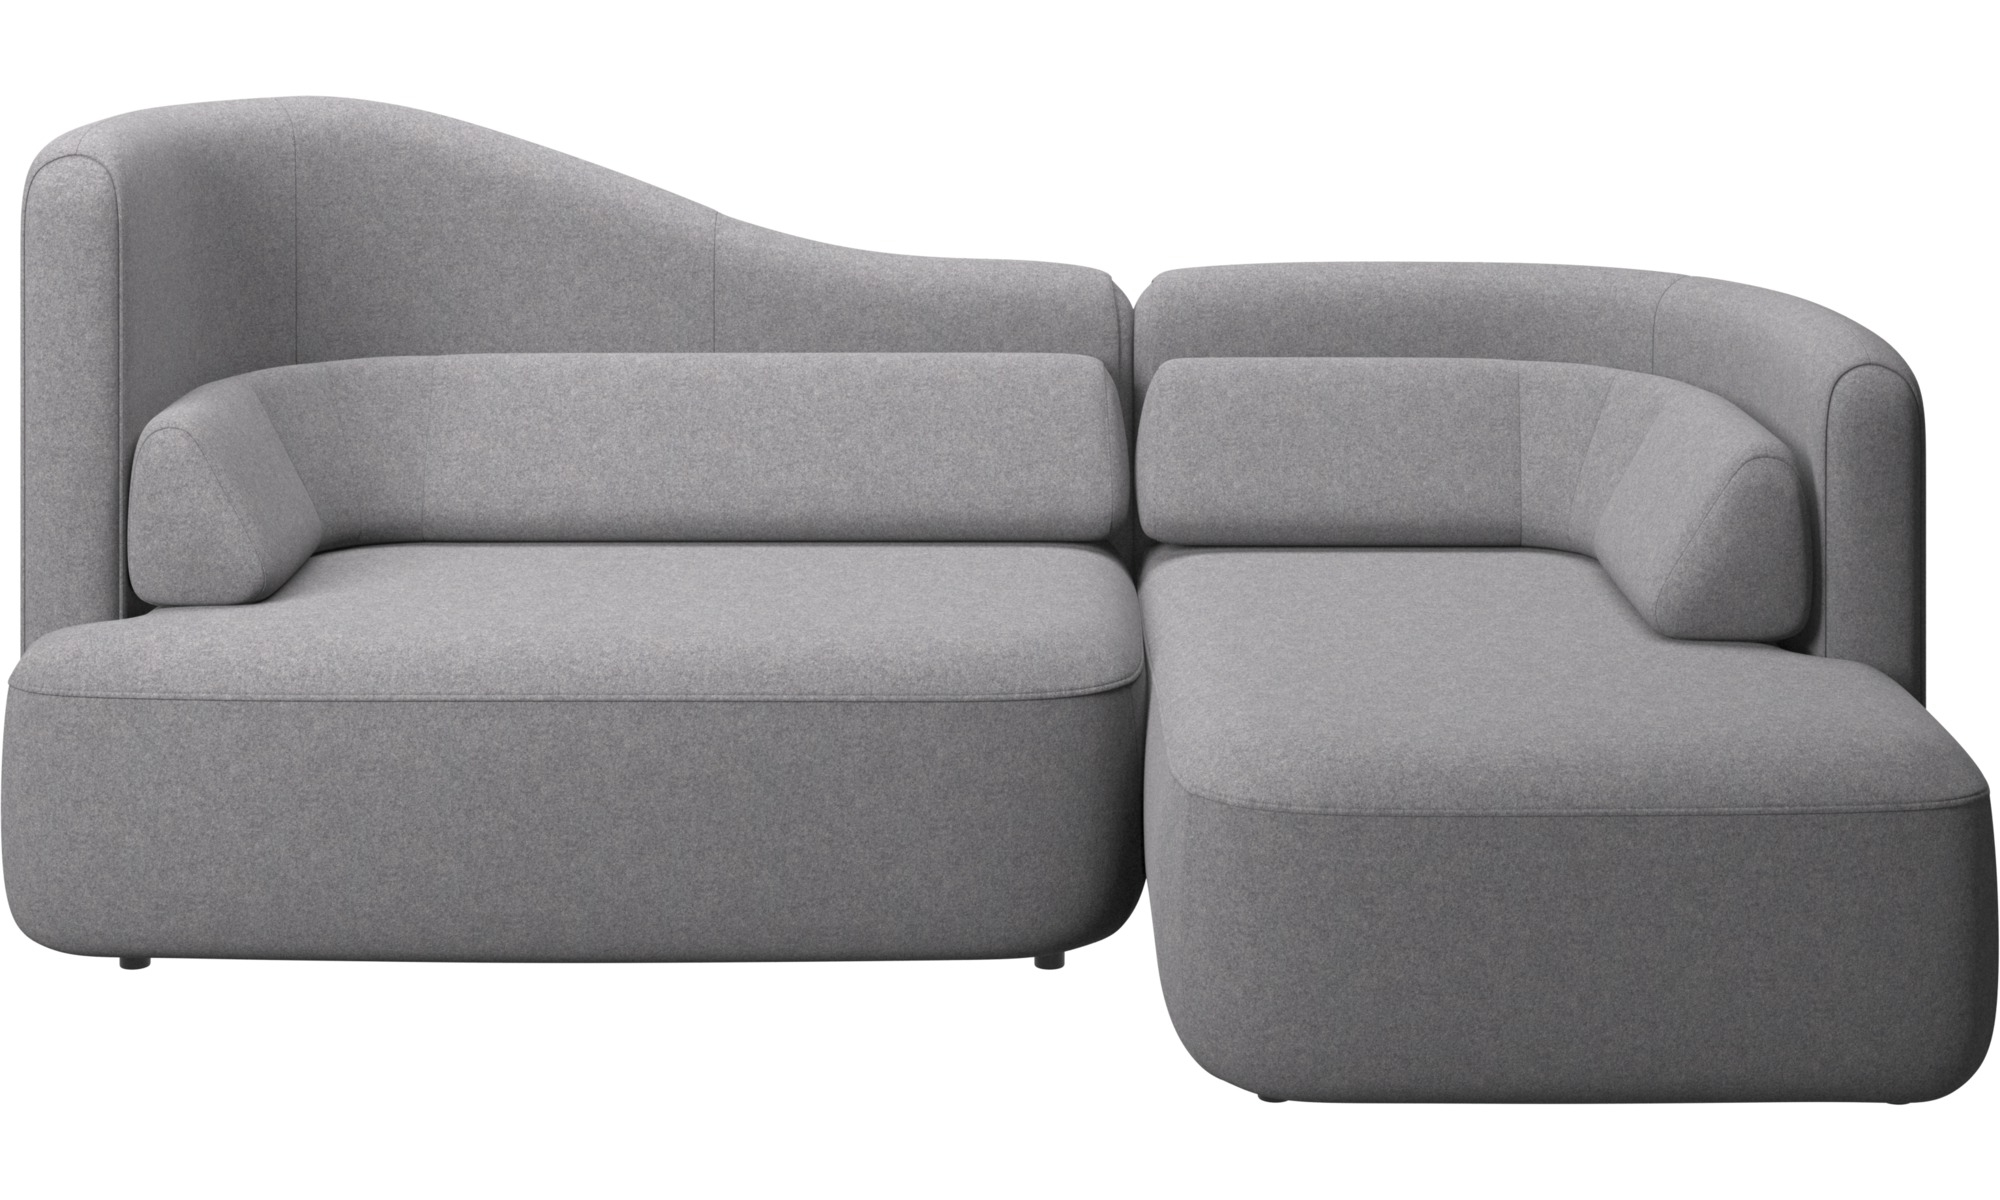 Mini Sofas With Preferred Living Room : Modular Sofas For Small Spaces Space Saving Beds (View 10 of 15)